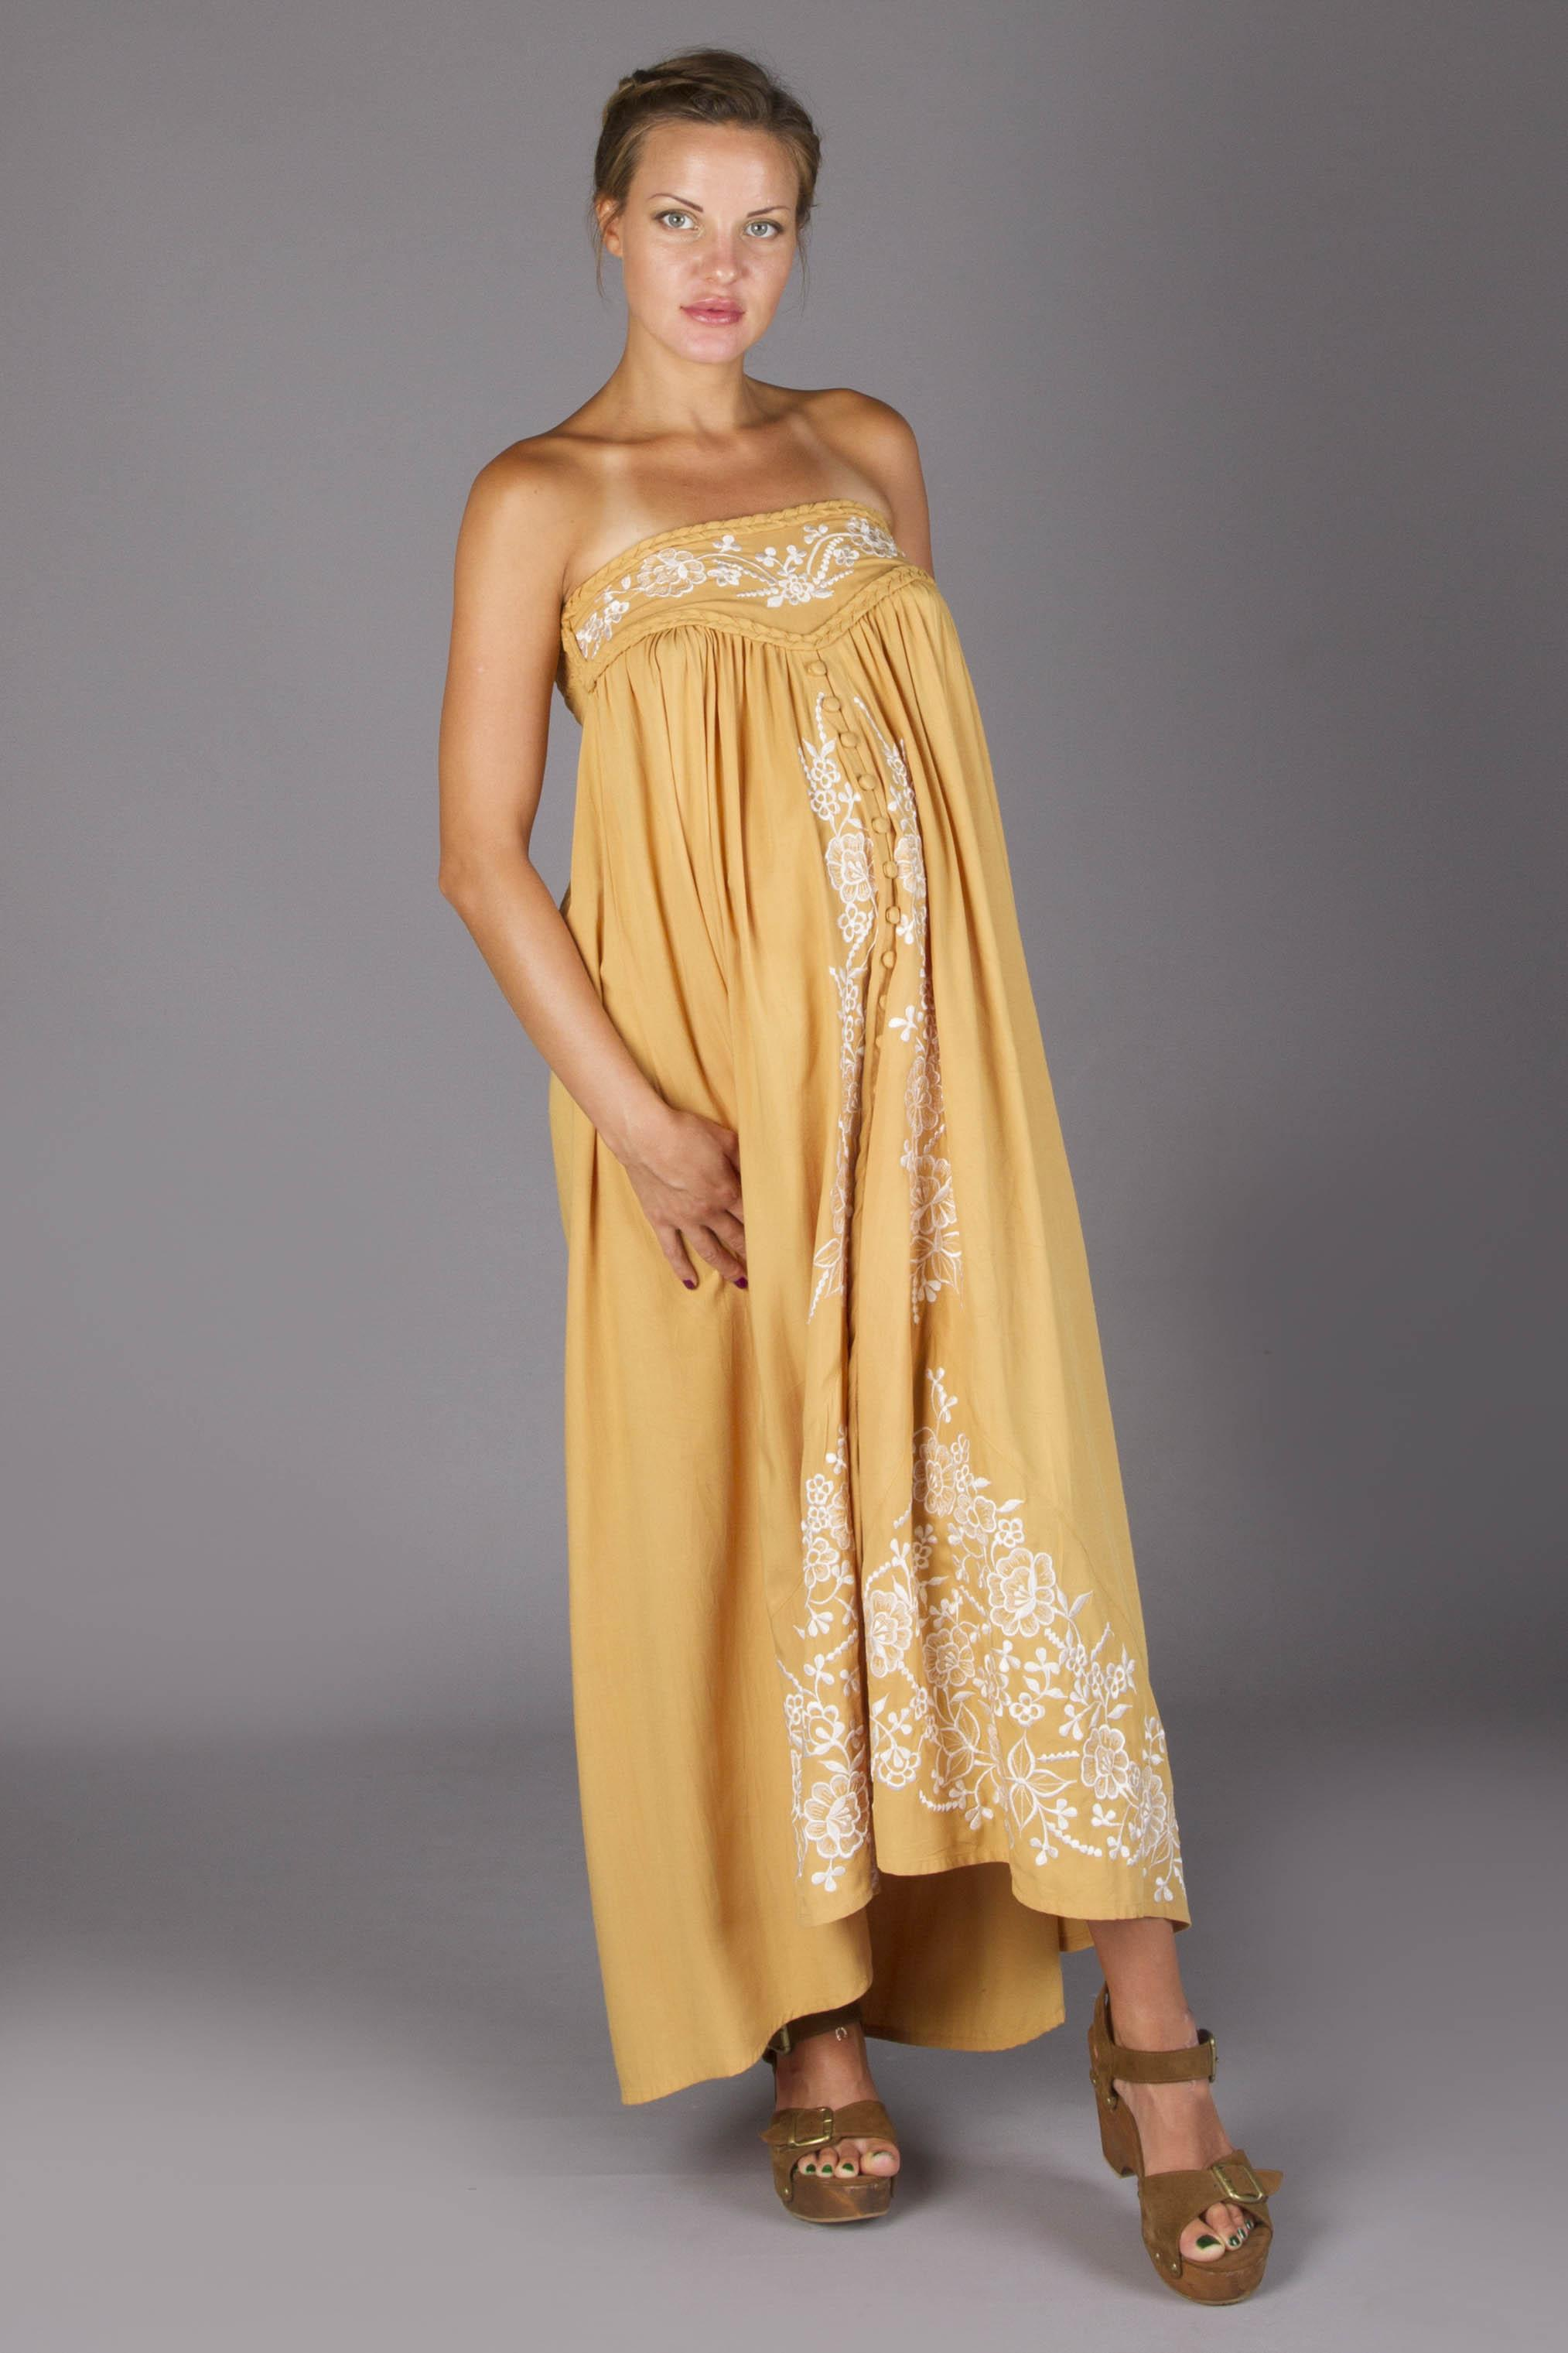 Quot Abbey Road Quot Maternity Maxi Skirt Strapless Dress Gold